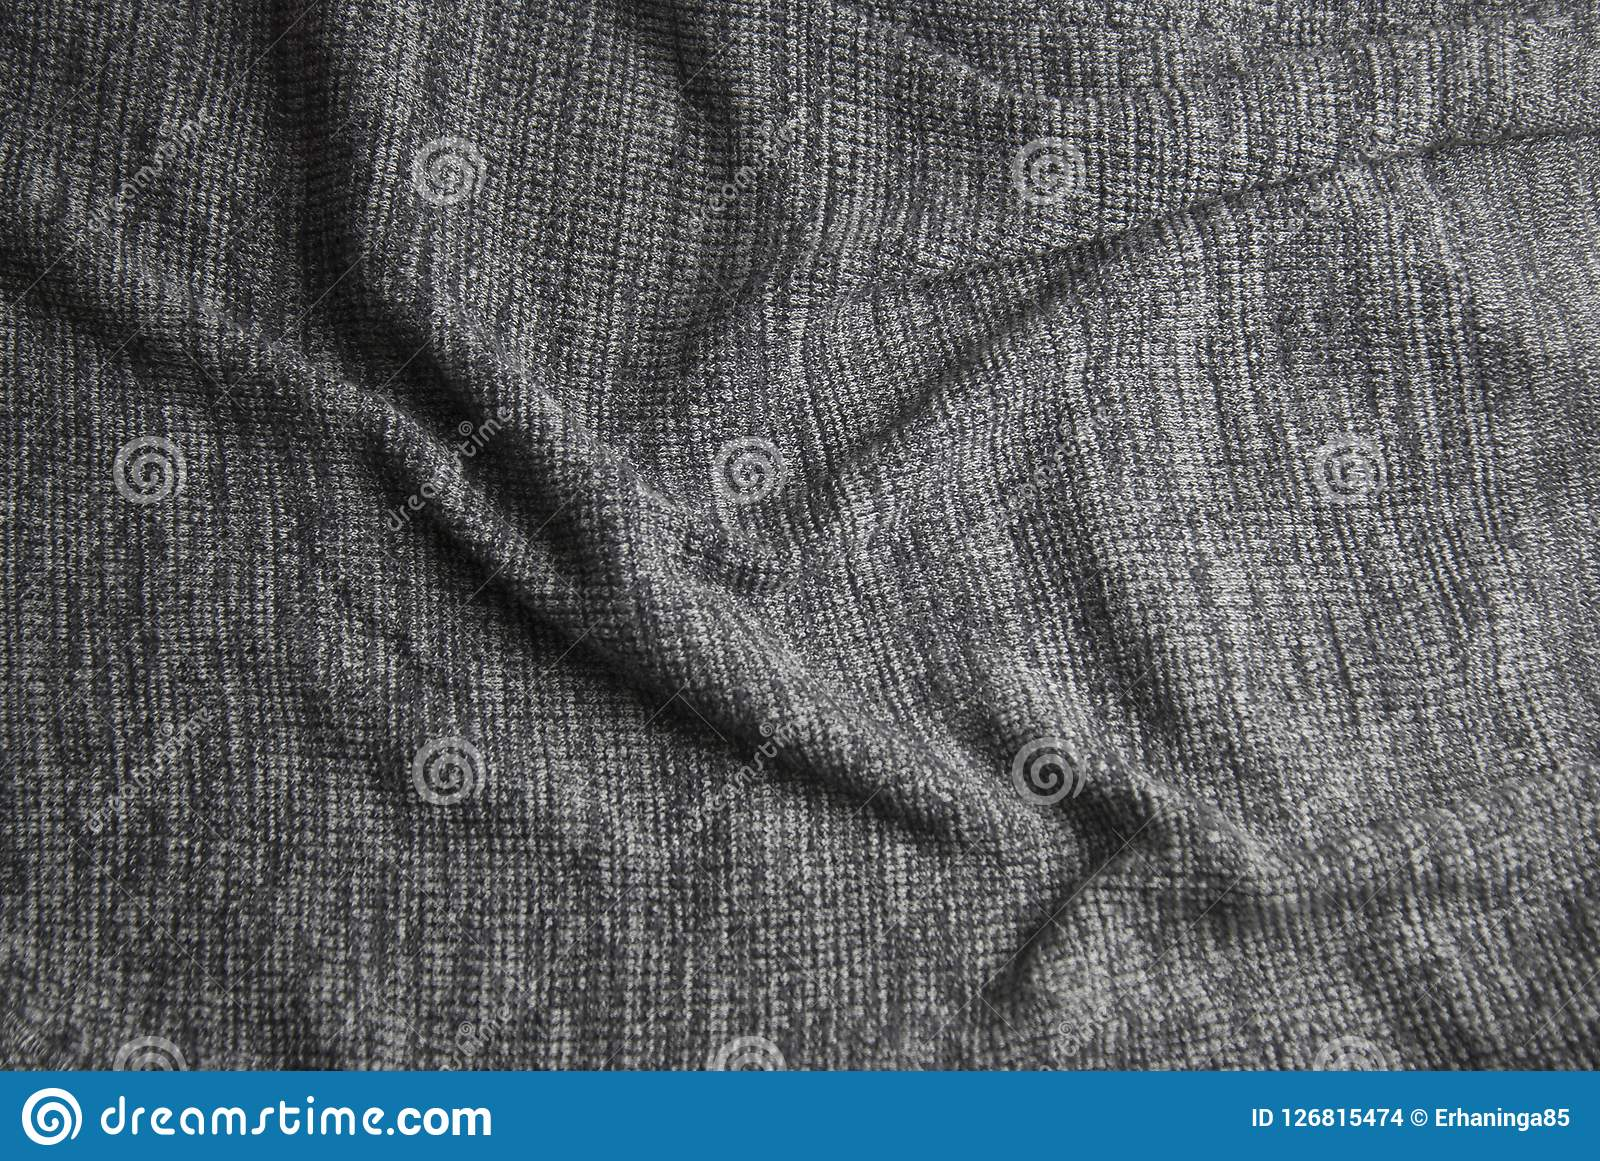 Soft Blanket Texture For Gray Knitted Blanket Soft And Warm Fabric Texture Copy Space Autumn Fall Knitted Blanket And Warm Fabric Texture Space